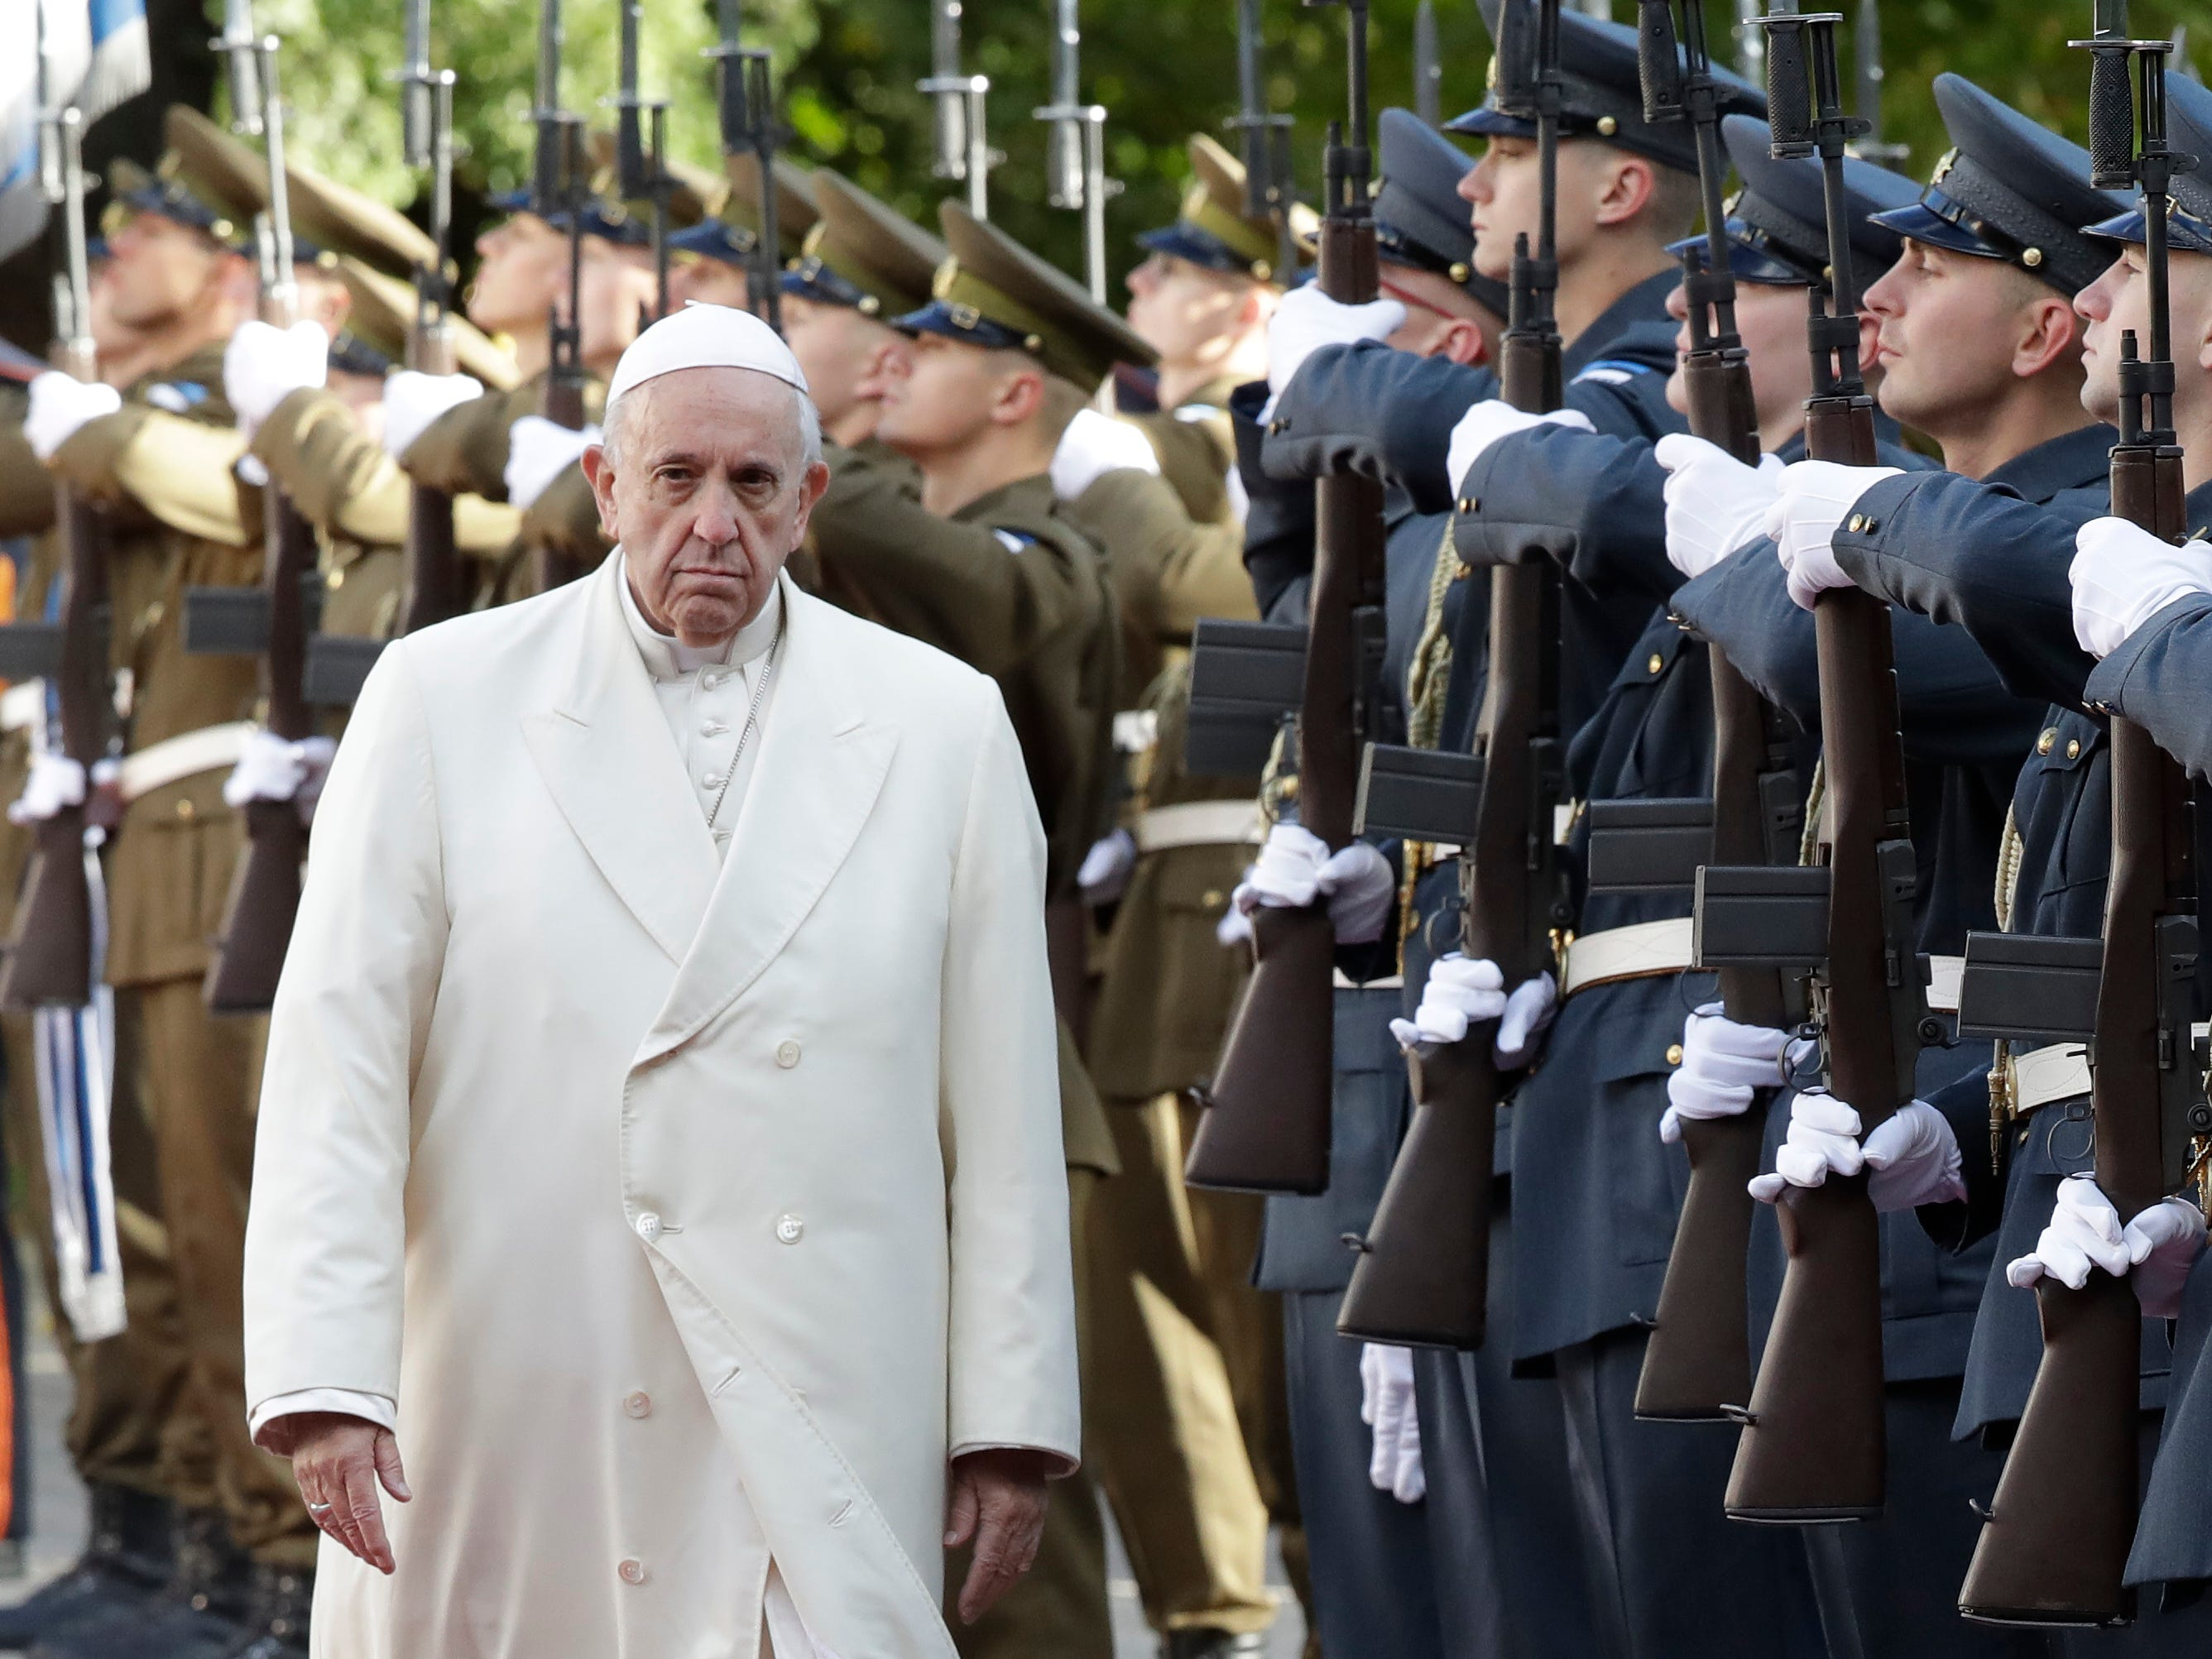 Pope Francis reviews the honor guard during the welcome ceremony at the Kadriorg Presidential Palace, Estonia, Tuesday, Sept. 25, 2018. Pope Francis' visit concludes his four-day tour of the Baltics.